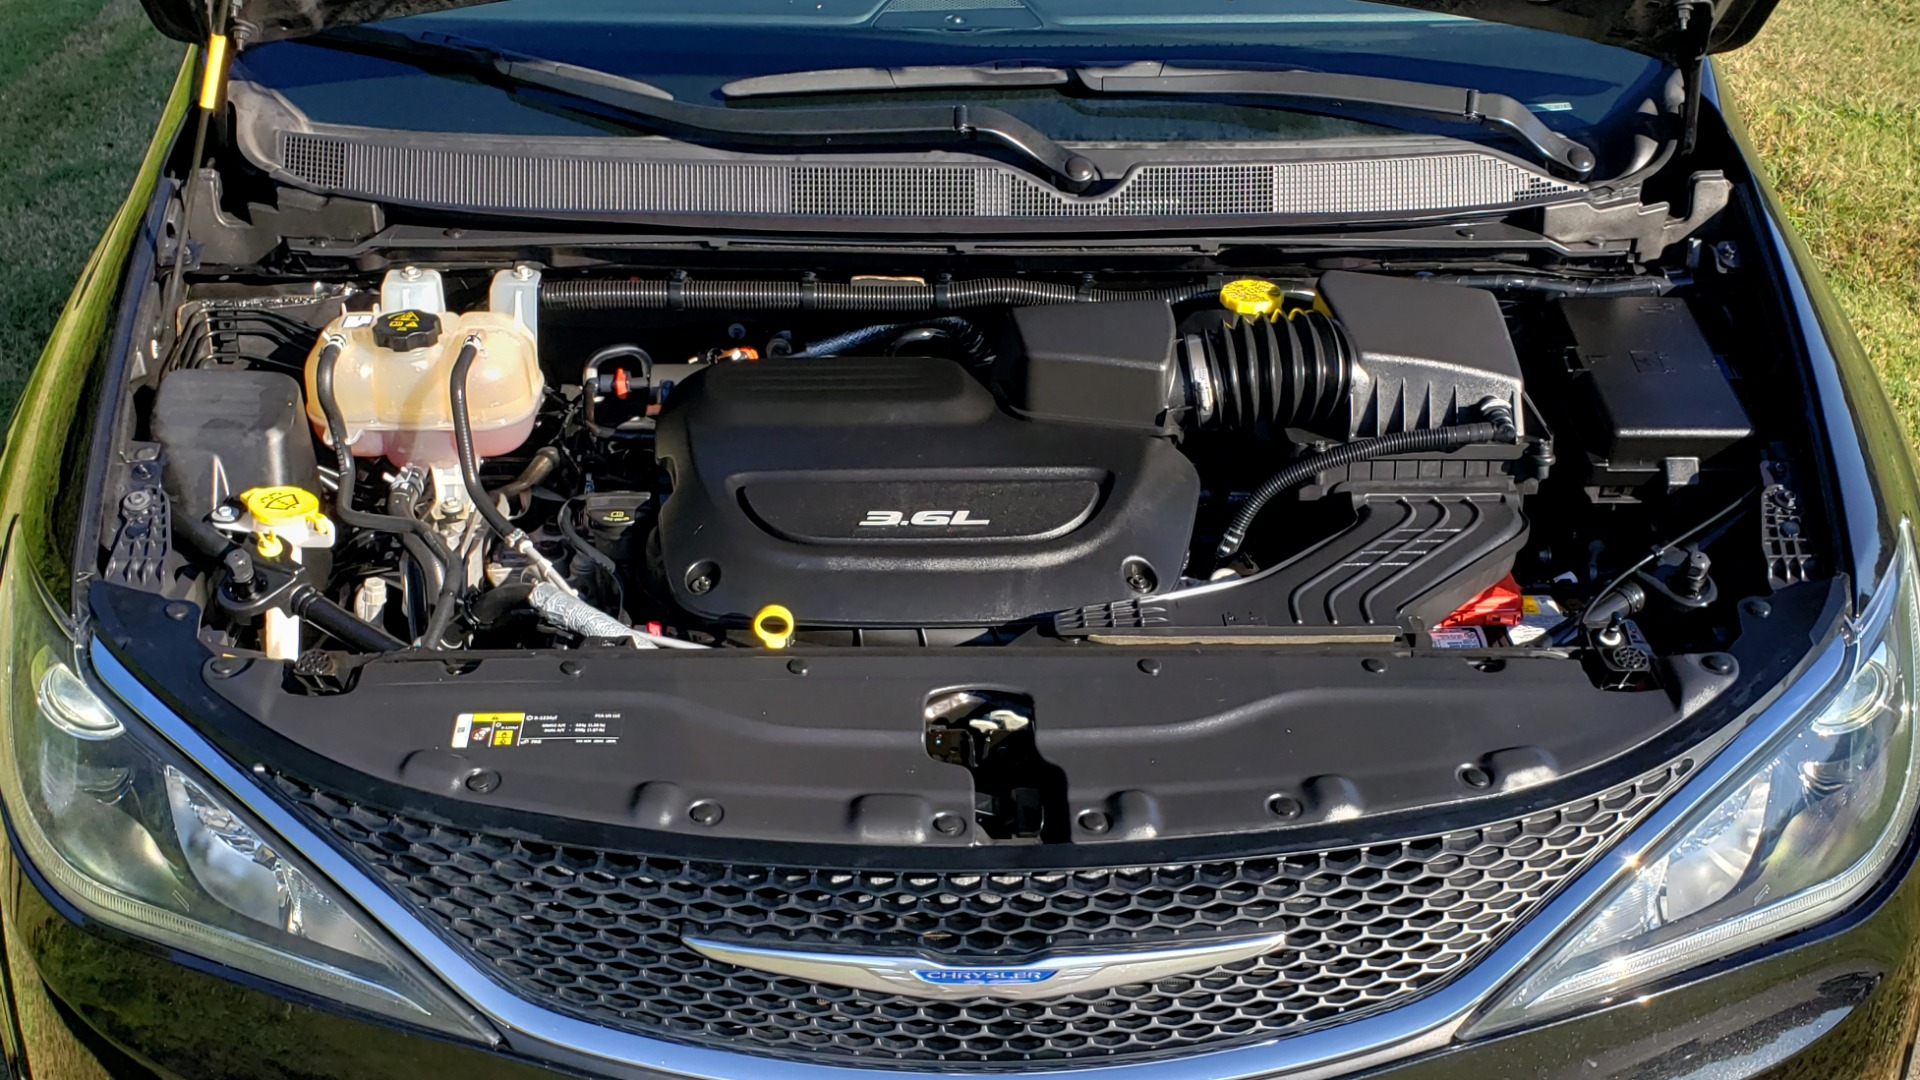 Used 2018 Chrysler PACIFICA LIMITED / 3.6L V6 / NAV / PANO-ROOF / 3-ROWS / REARVIEW for sale Sold at Formula Imports in Charlotte NC 28227 20